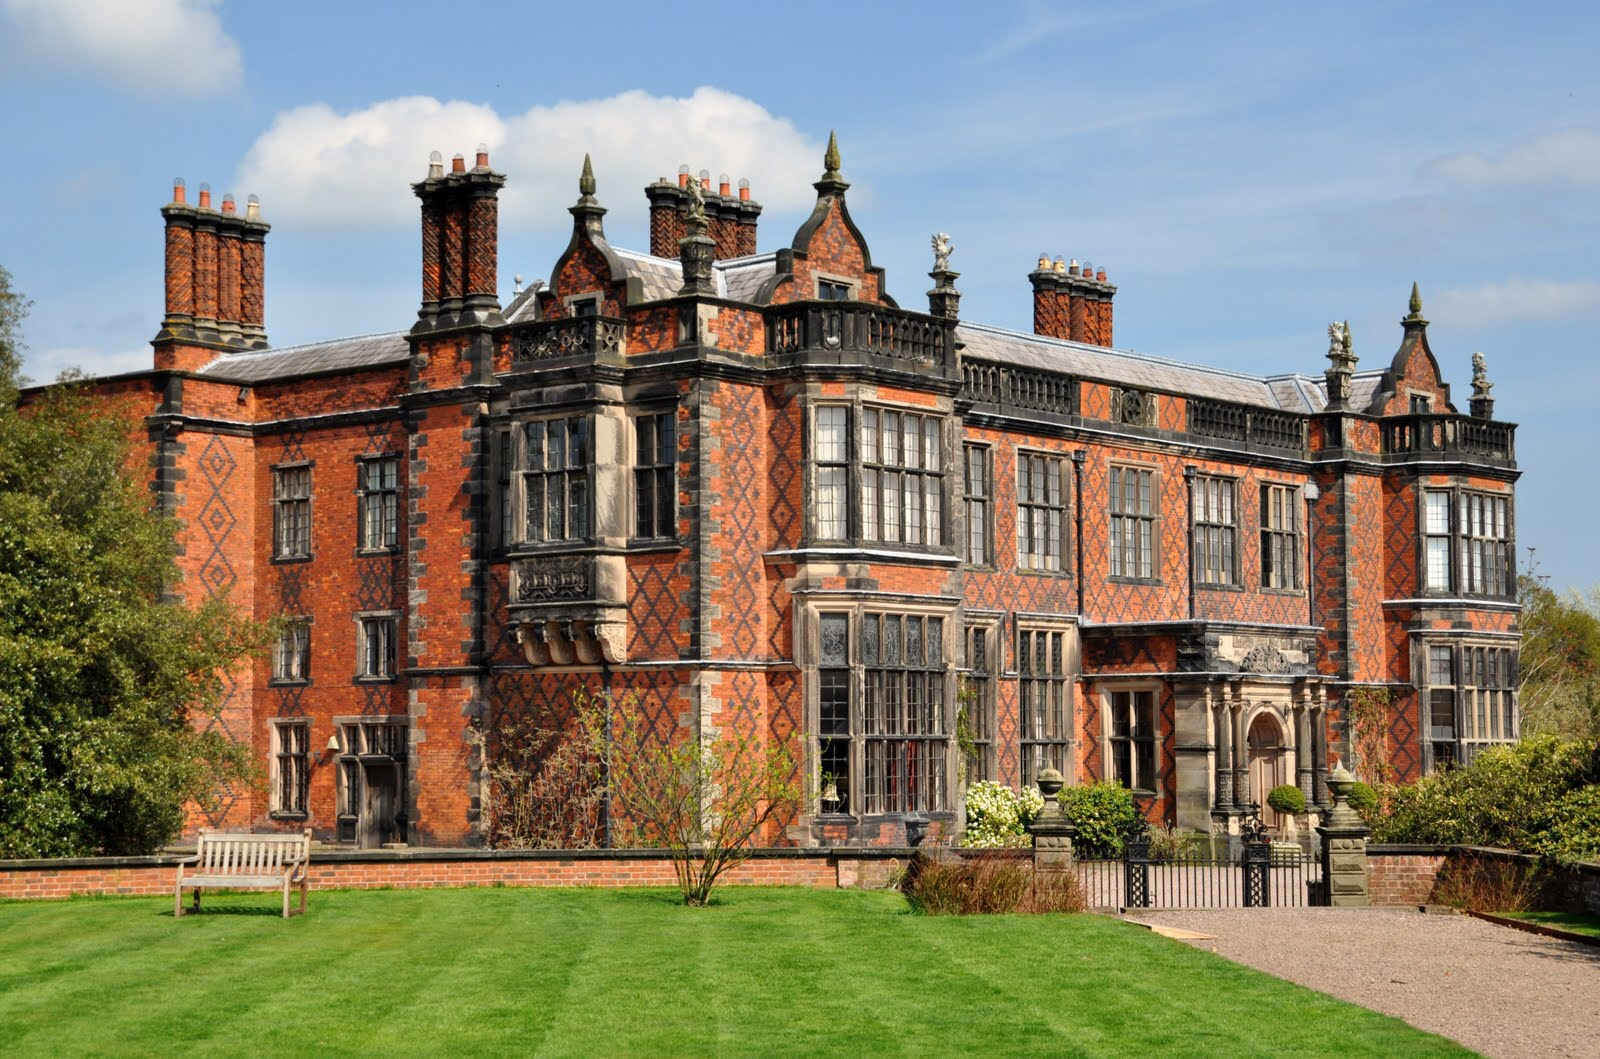 Arley Hall to host Antiques Roadshow in 2016 - About Manchester